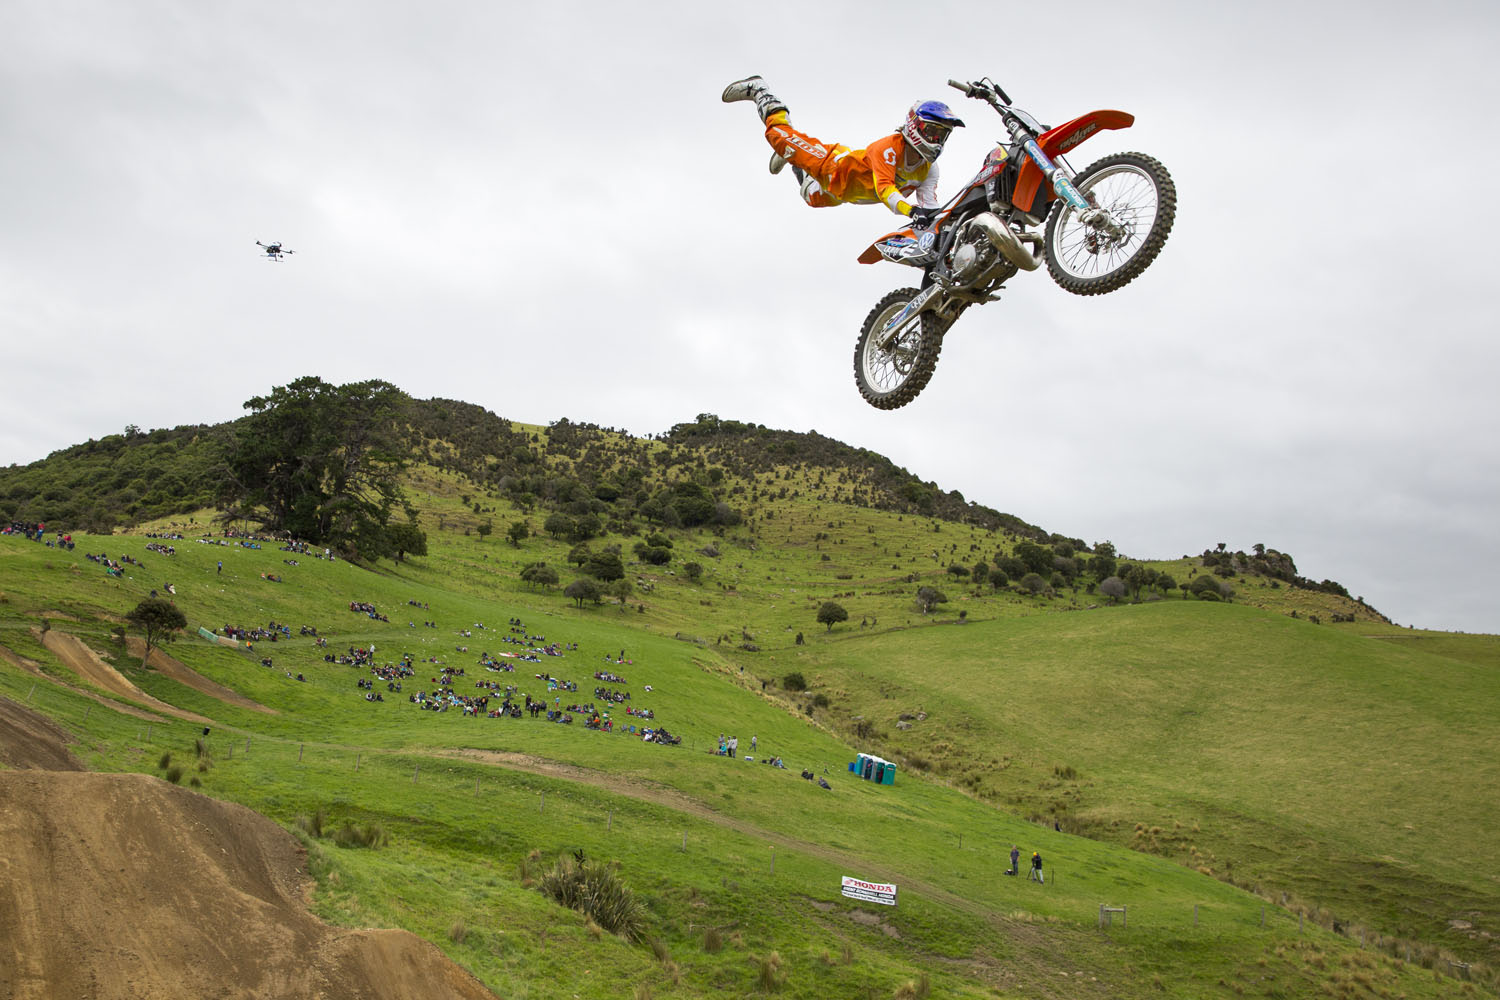 Nick Franklin at the Farm Jam in Winton, New Zealand.